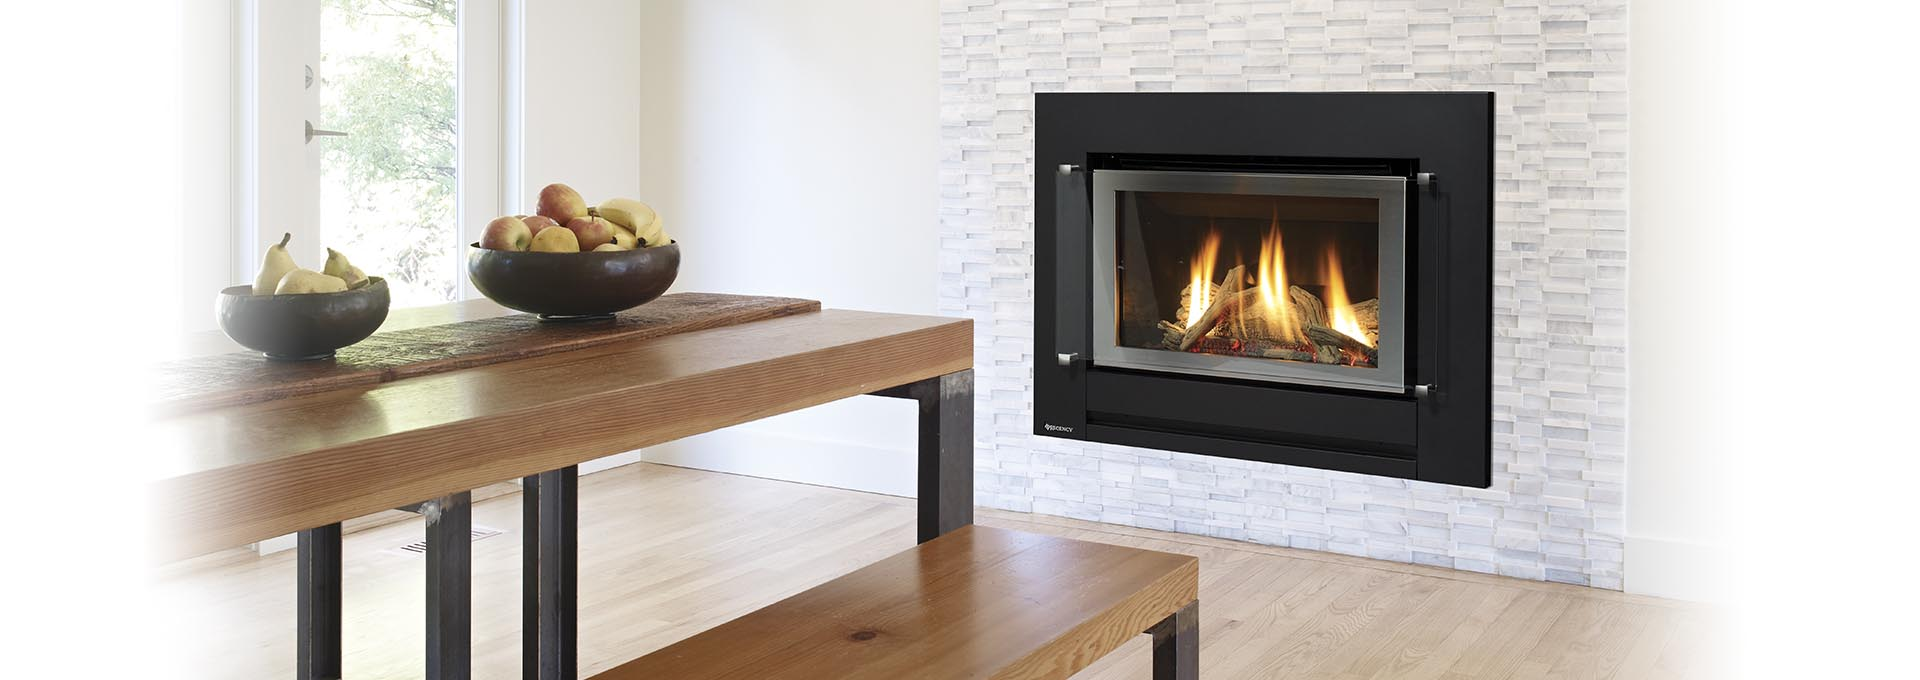 17 Best Images About Fireplace Insert On Pinterest